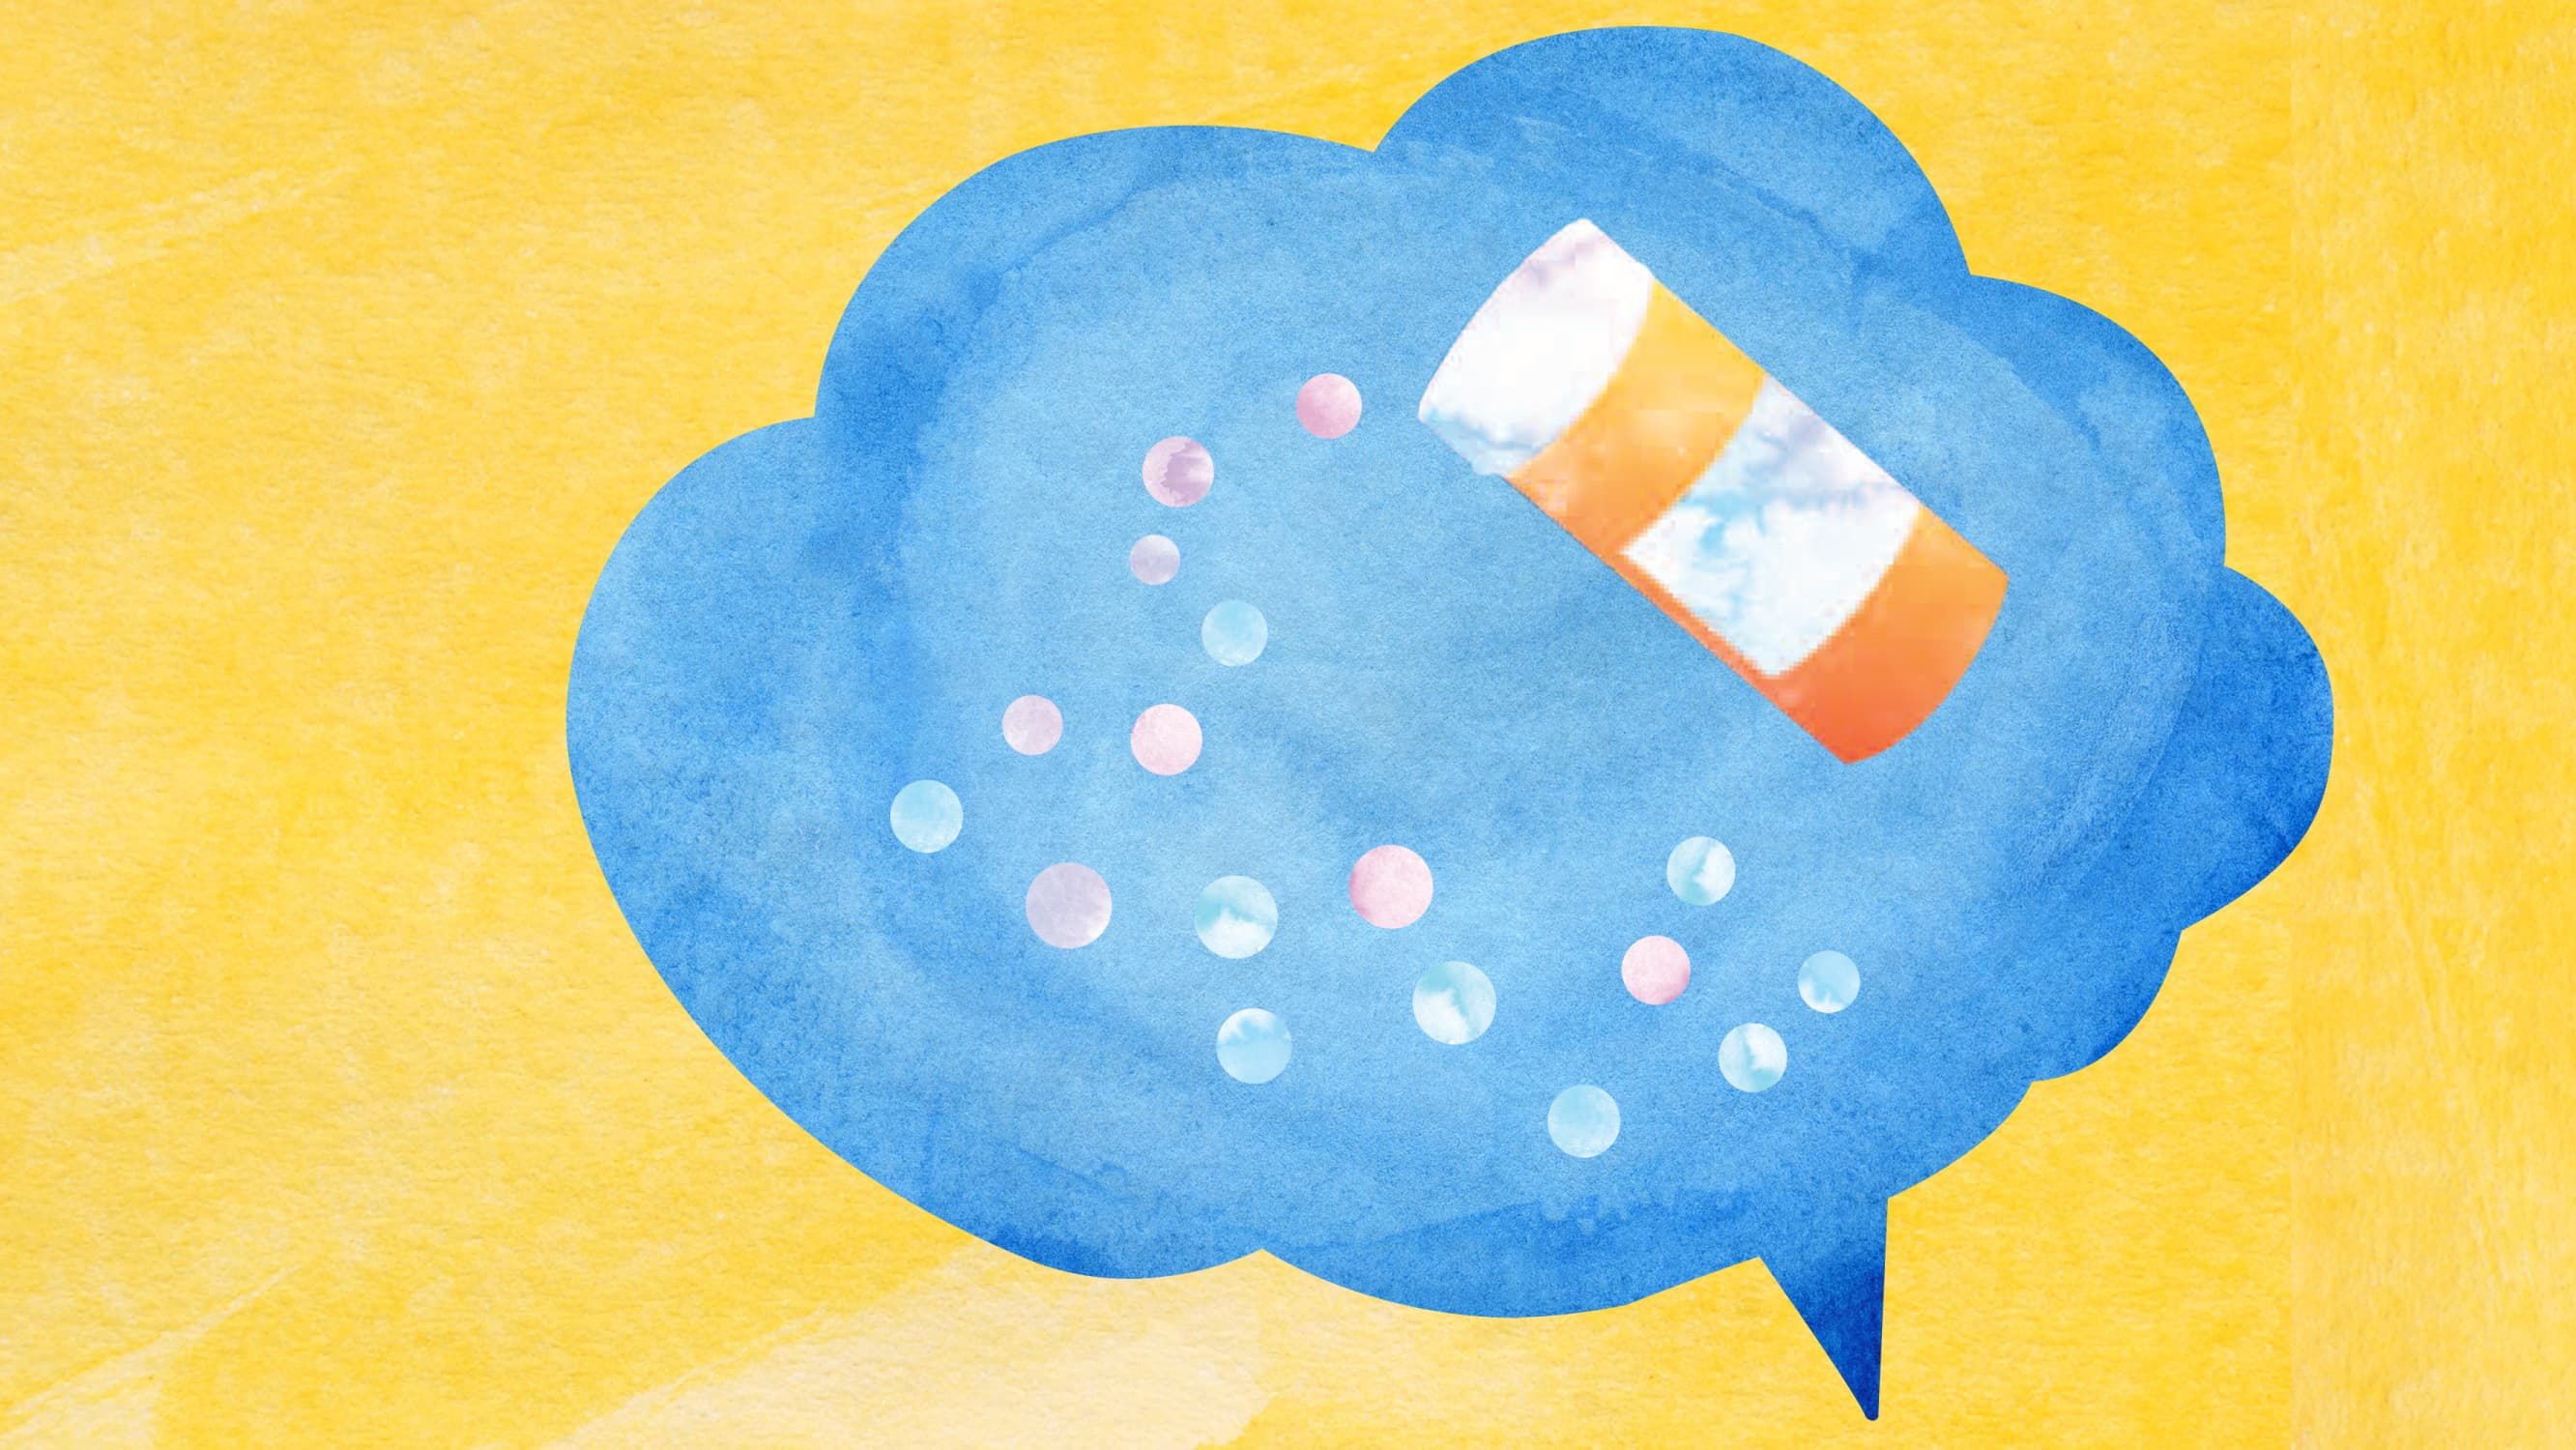 An illustration of a blue speech bubble is shown with pills and a prescription bottle inside.